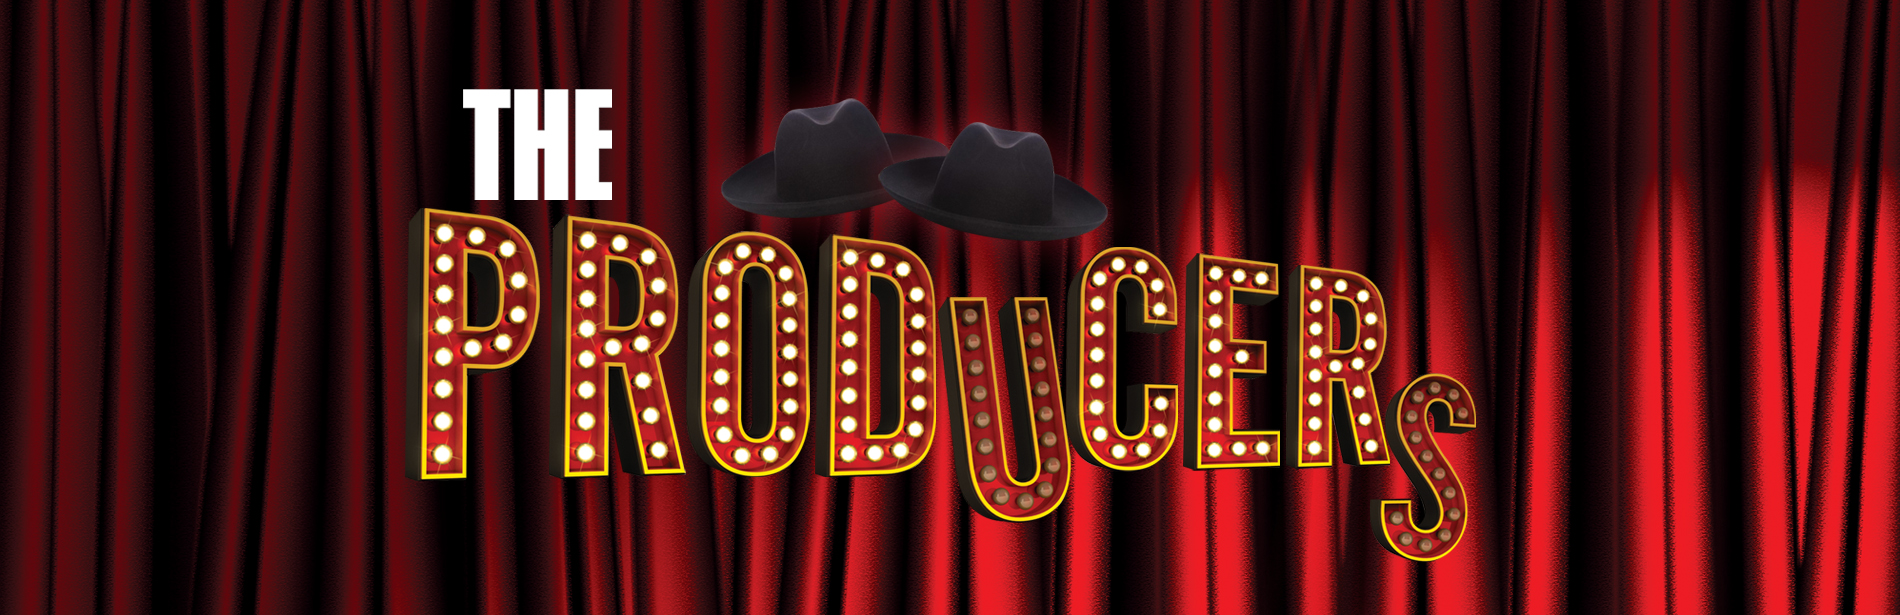 Broadway Musical - The Producers